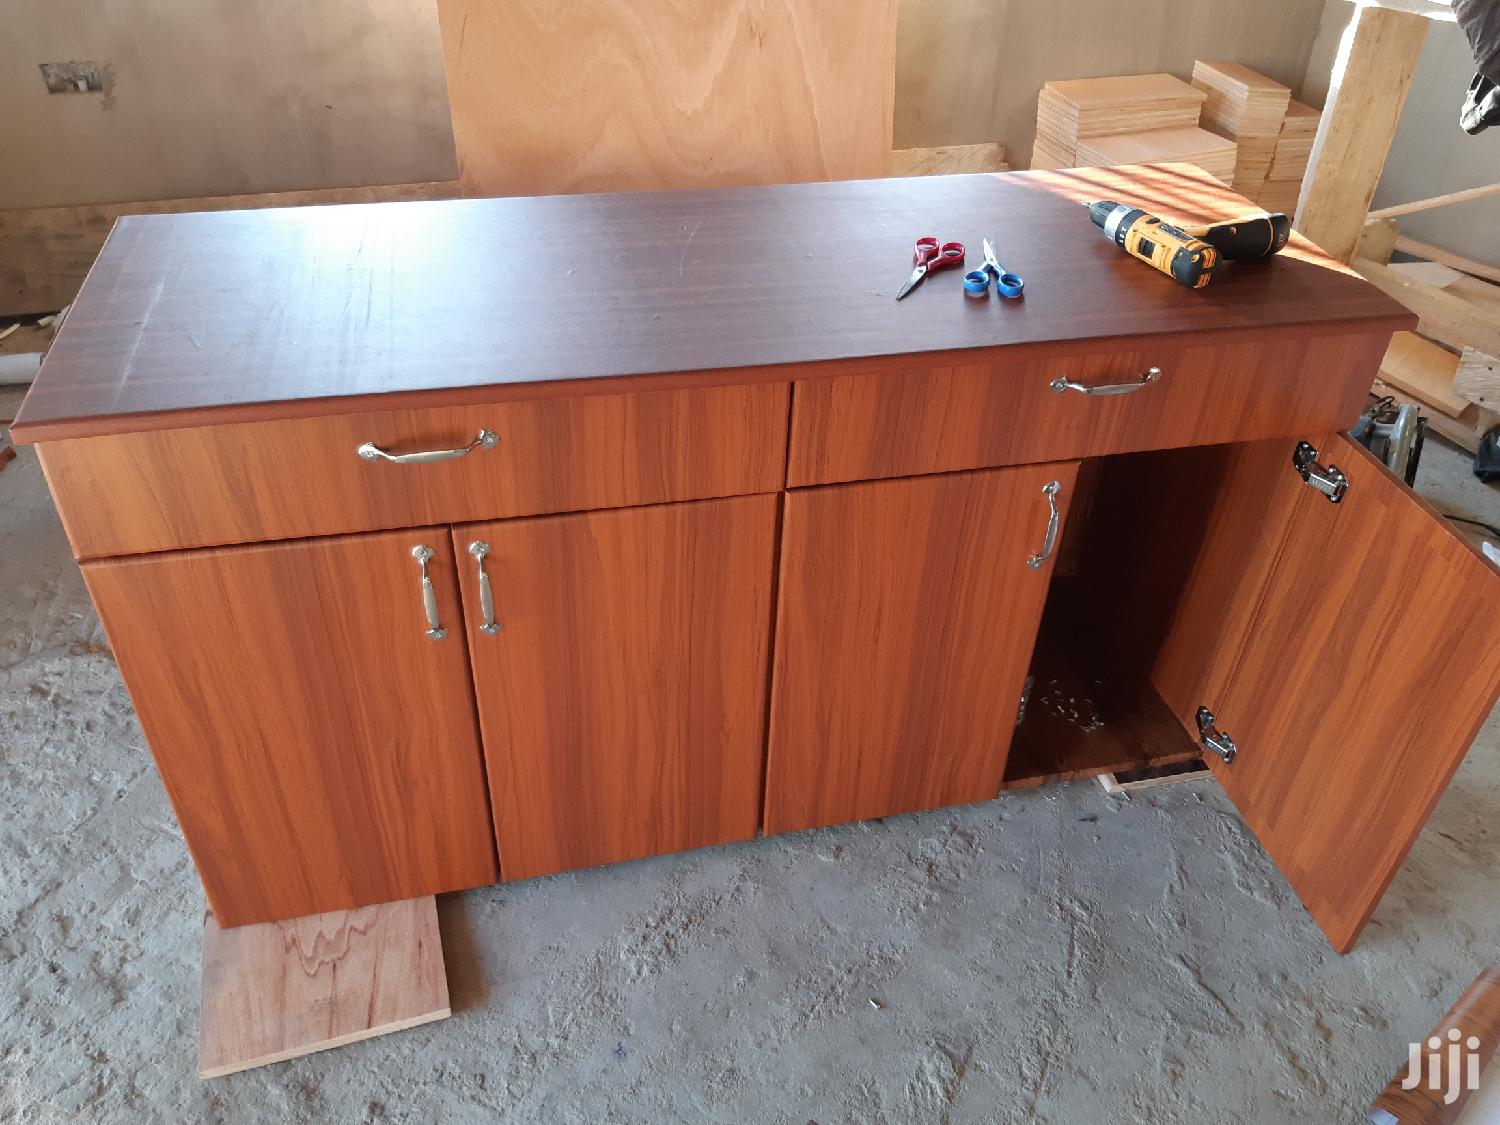 Floor Unit Kitchen Cabinet | Furniture for sale in Odorkor, Greater Accra, Ghana